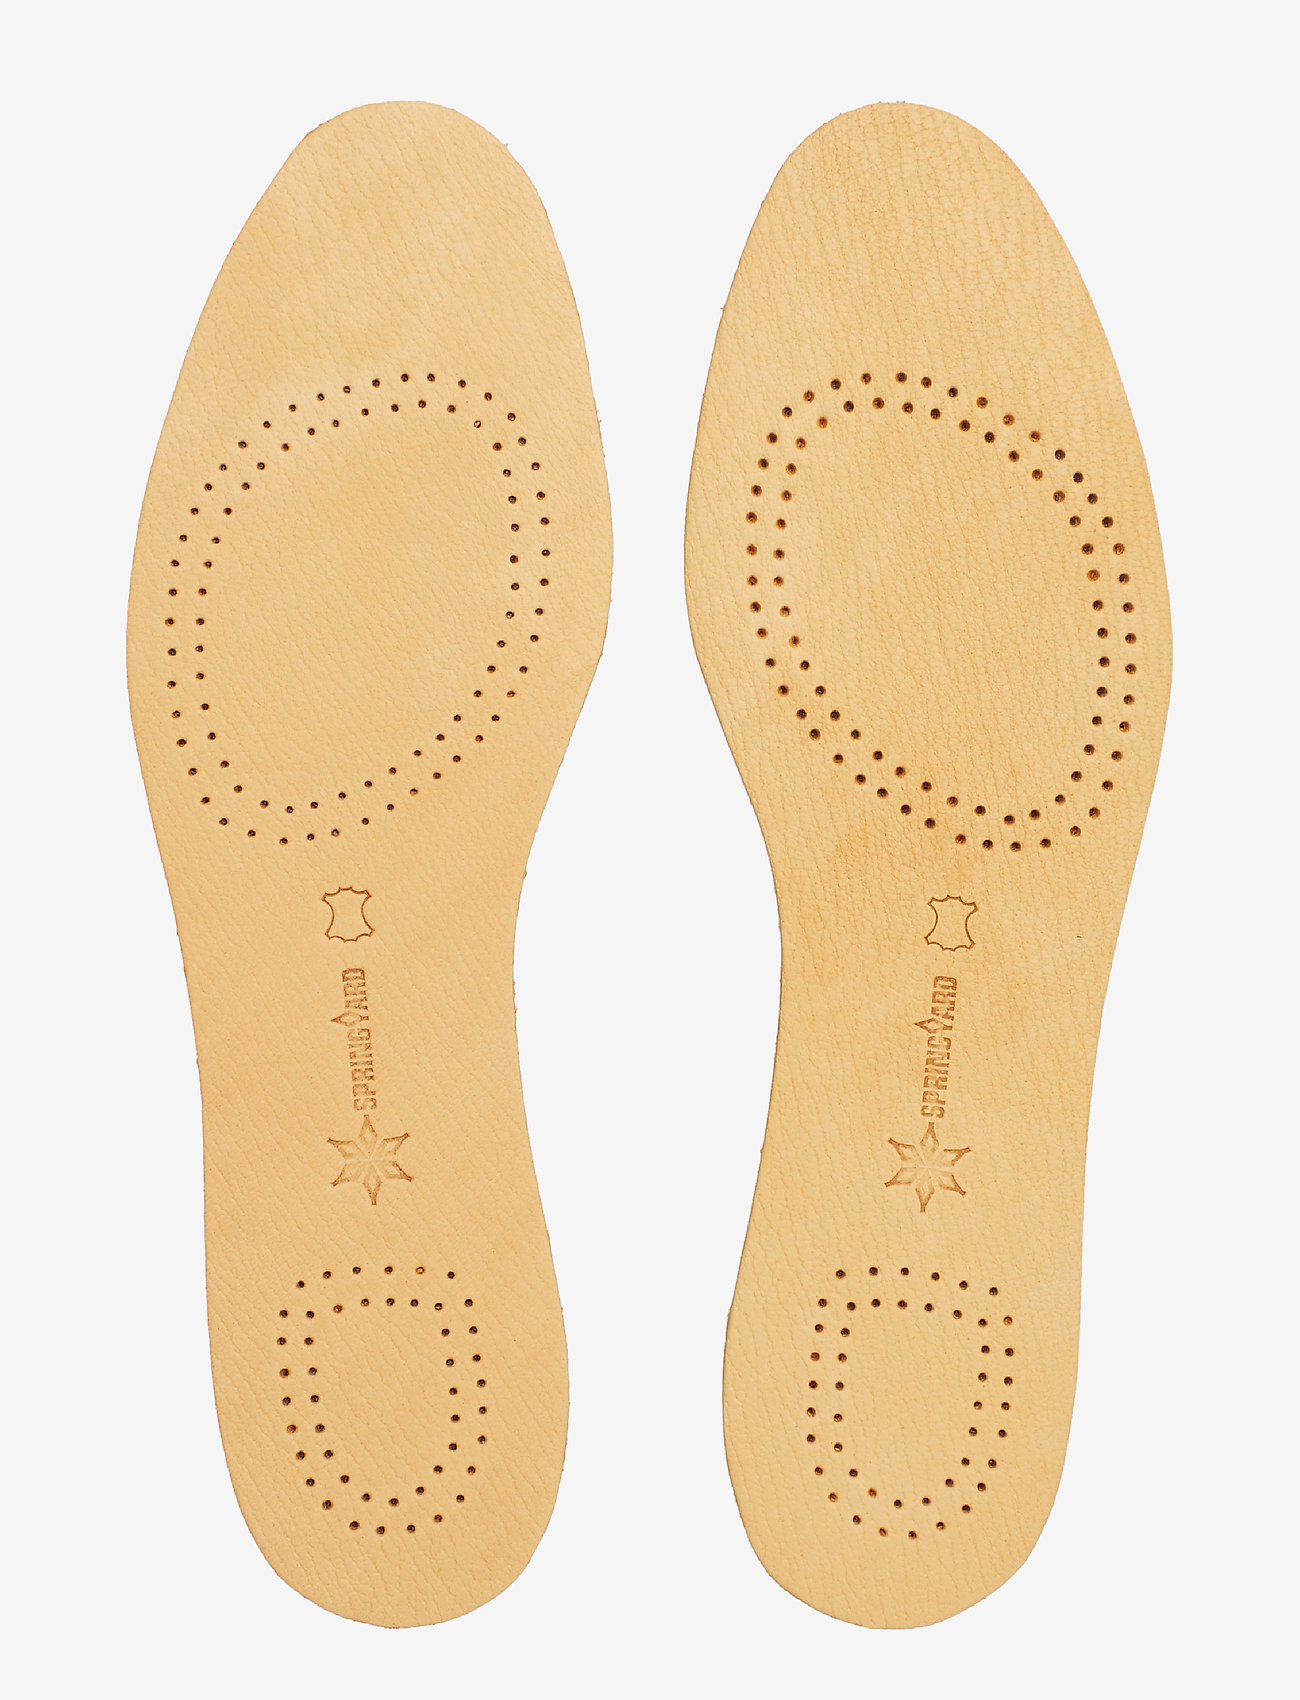 Springyard - Leather Insoles Therapy - soles - natural - 1